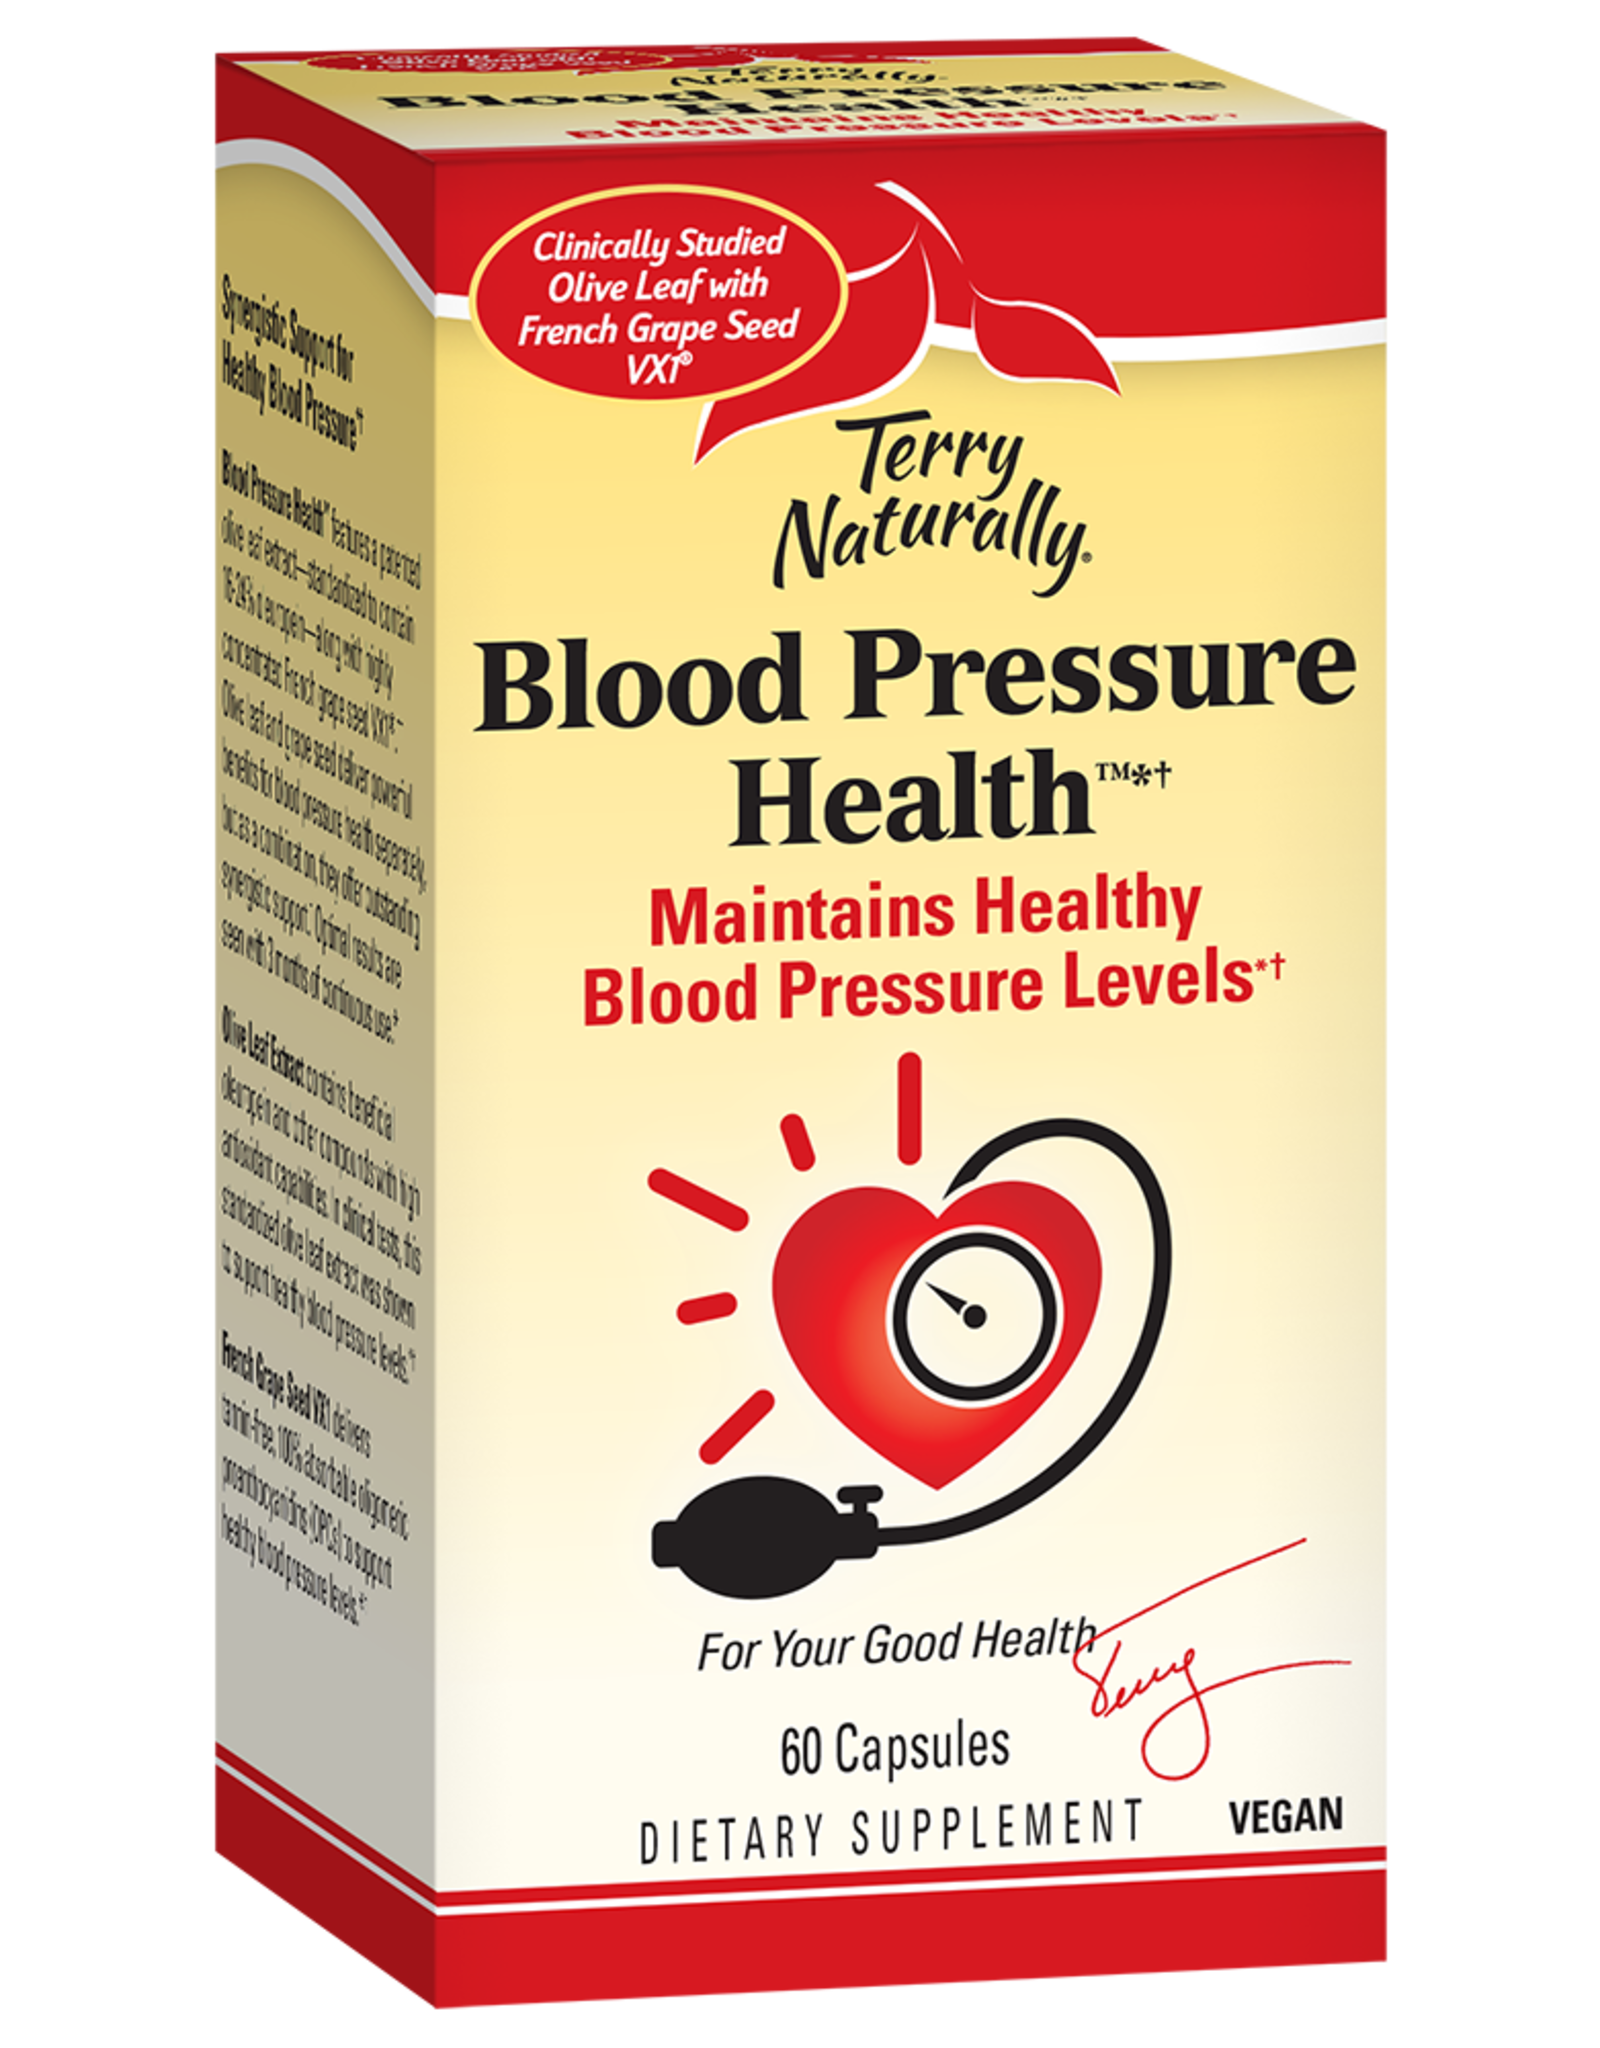 Terry Naturally Blood Pressure Health 60ct